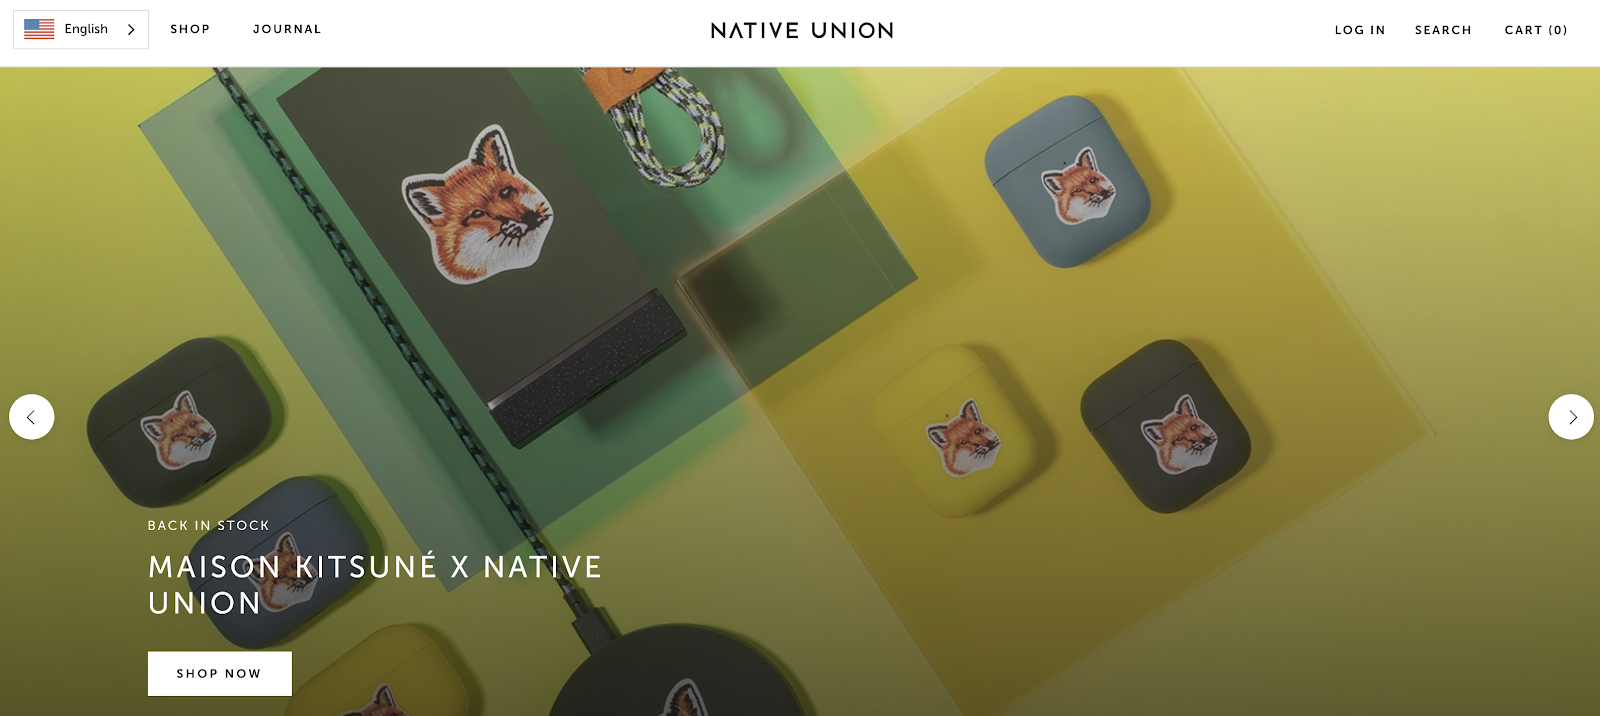 Native Union eCommerce Website Example (Screenshot)